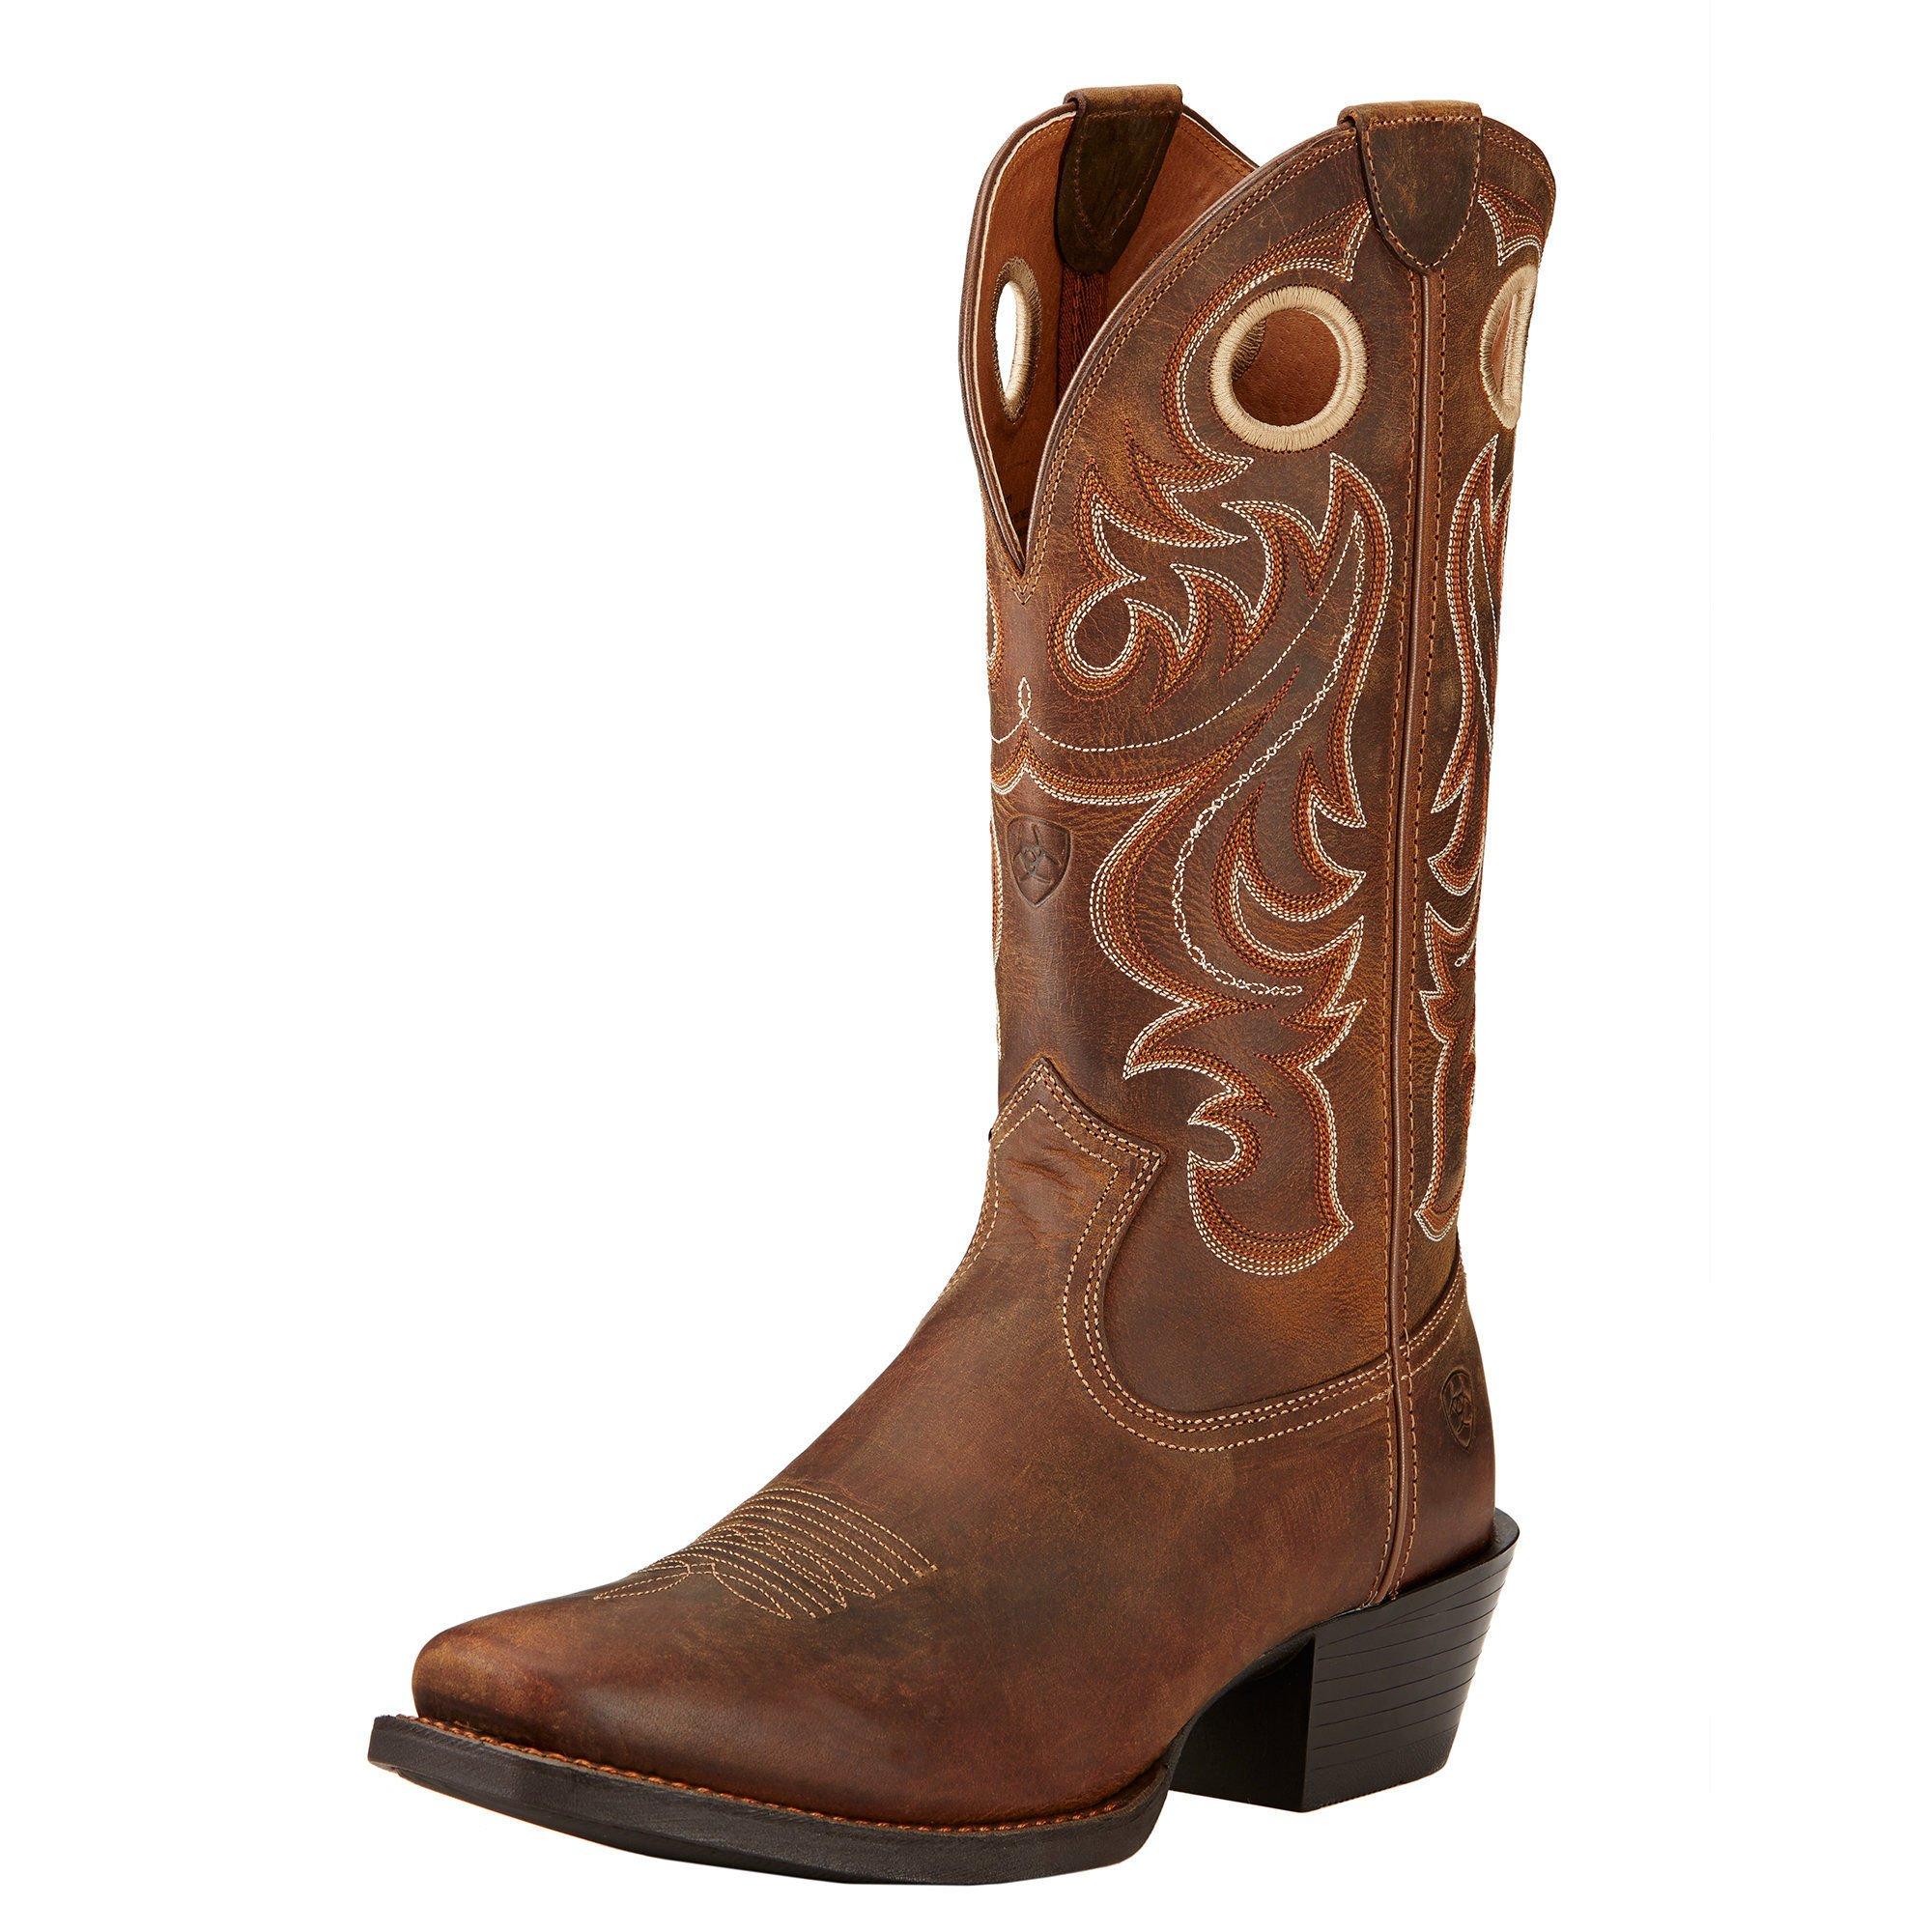 Ariat Men's Sport Square Toe Western Cowboy Boot, Powder Brown, 12 2E US